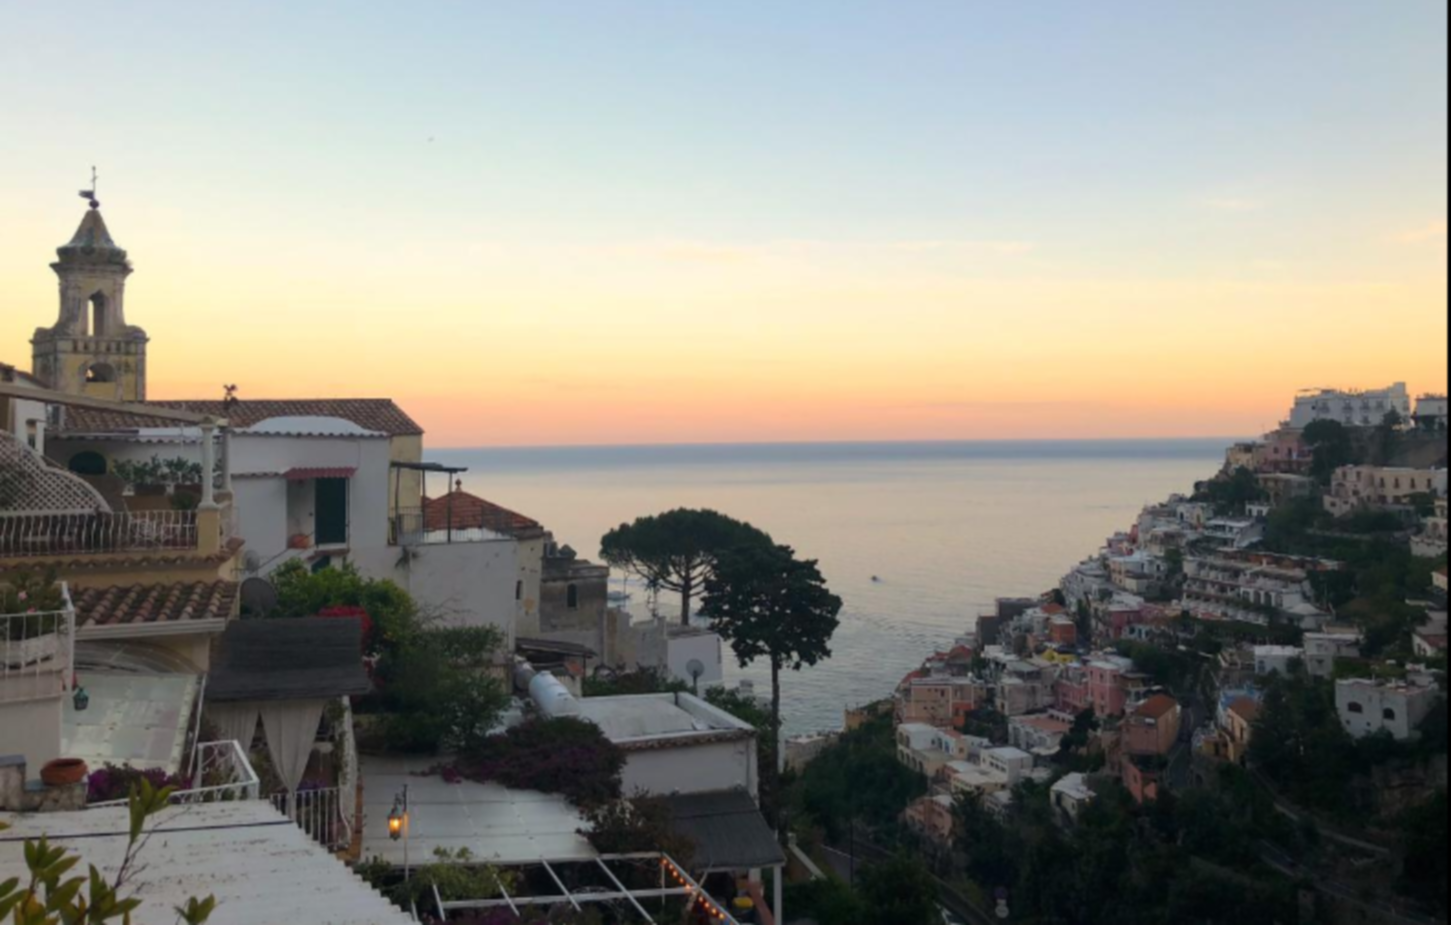 A large body of water with a city in the background at B&B Villa Mary Positano.